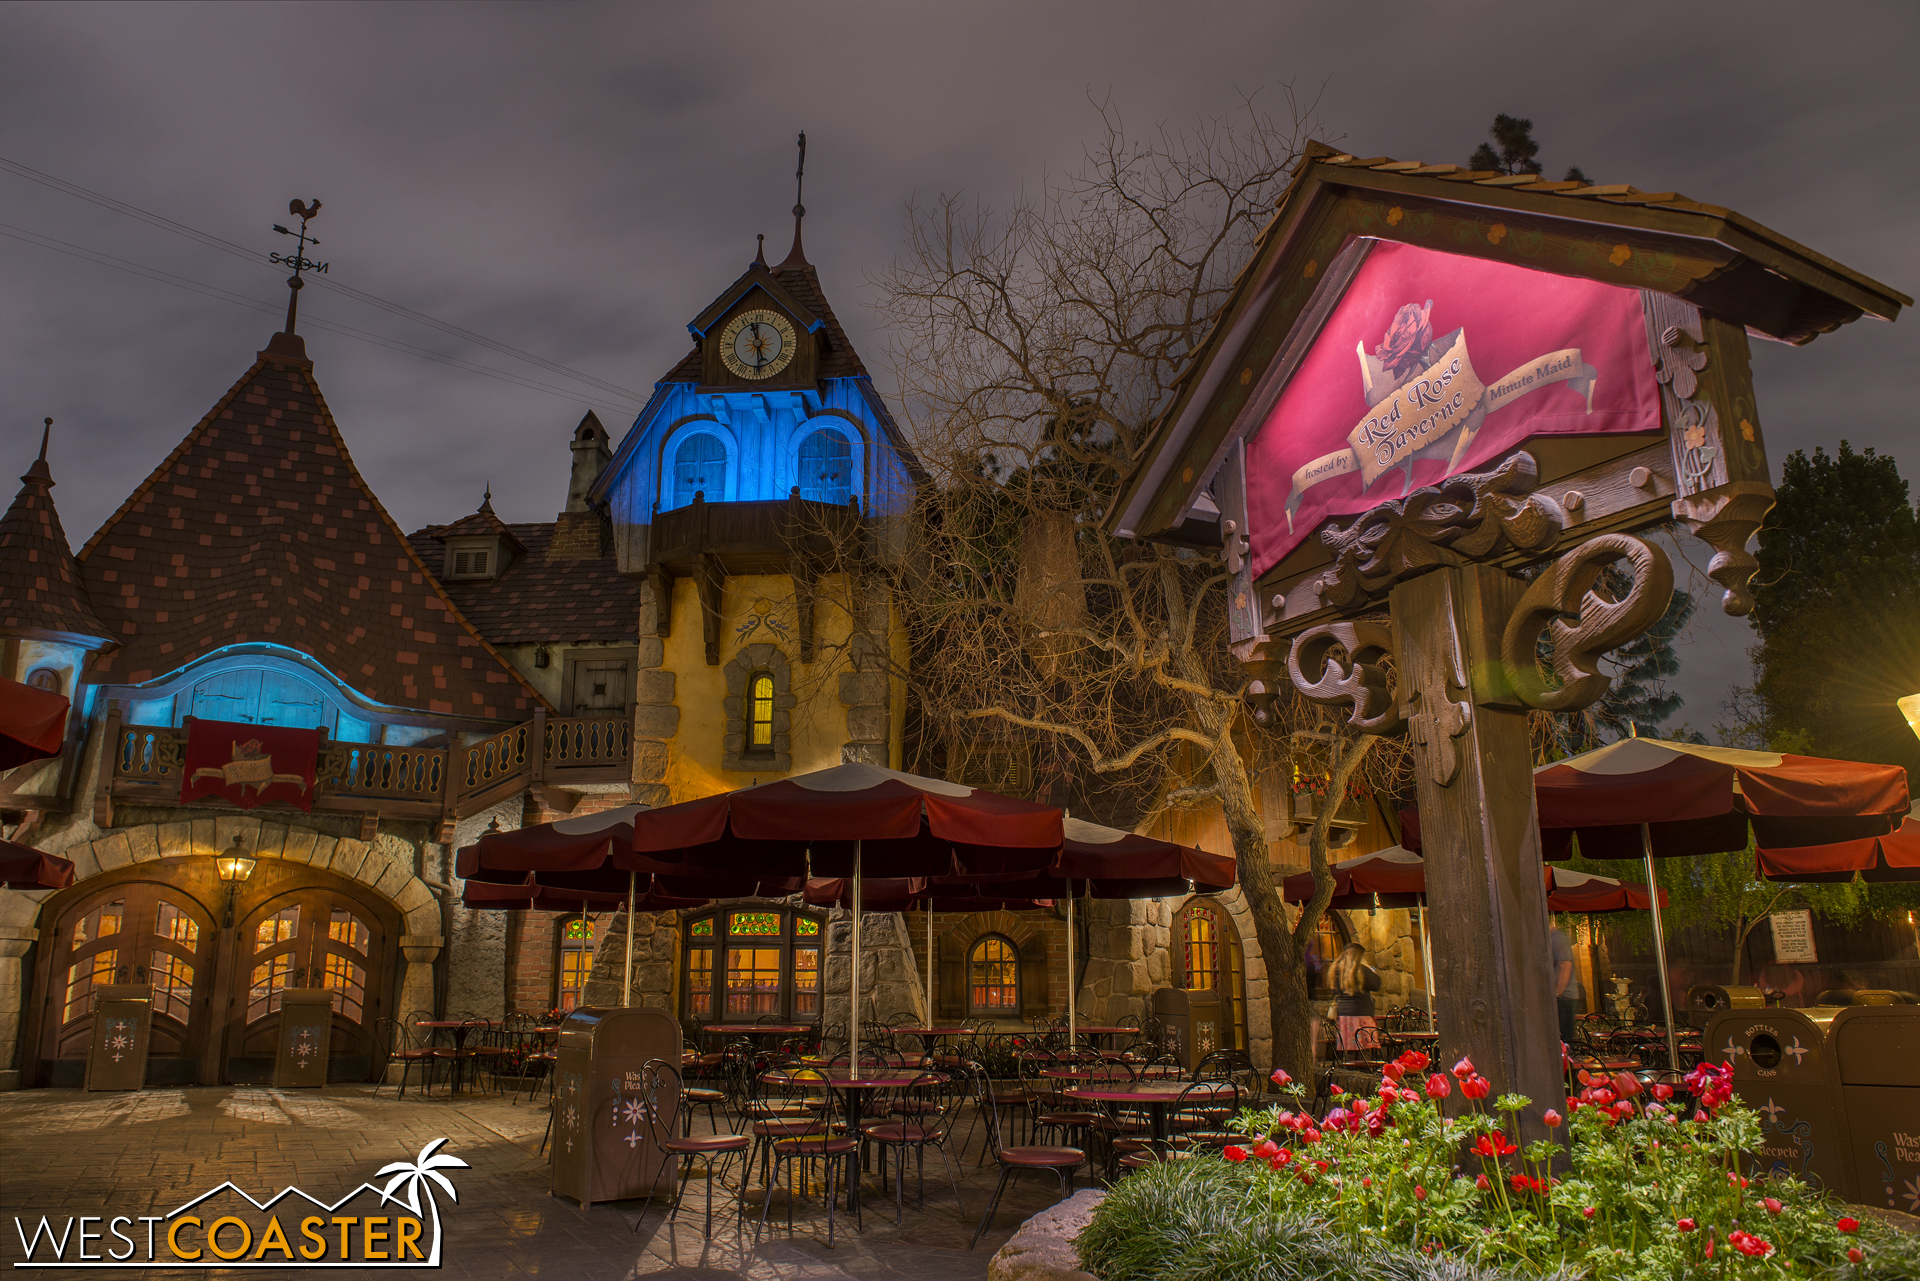 """There's no word on exactly how long this will run, but a couple of cast members offered """"a few months"""" as the anticipated timeline. Hopefully, some of the menu items make it onto the permanent rotation after this limited time experience ends!"""